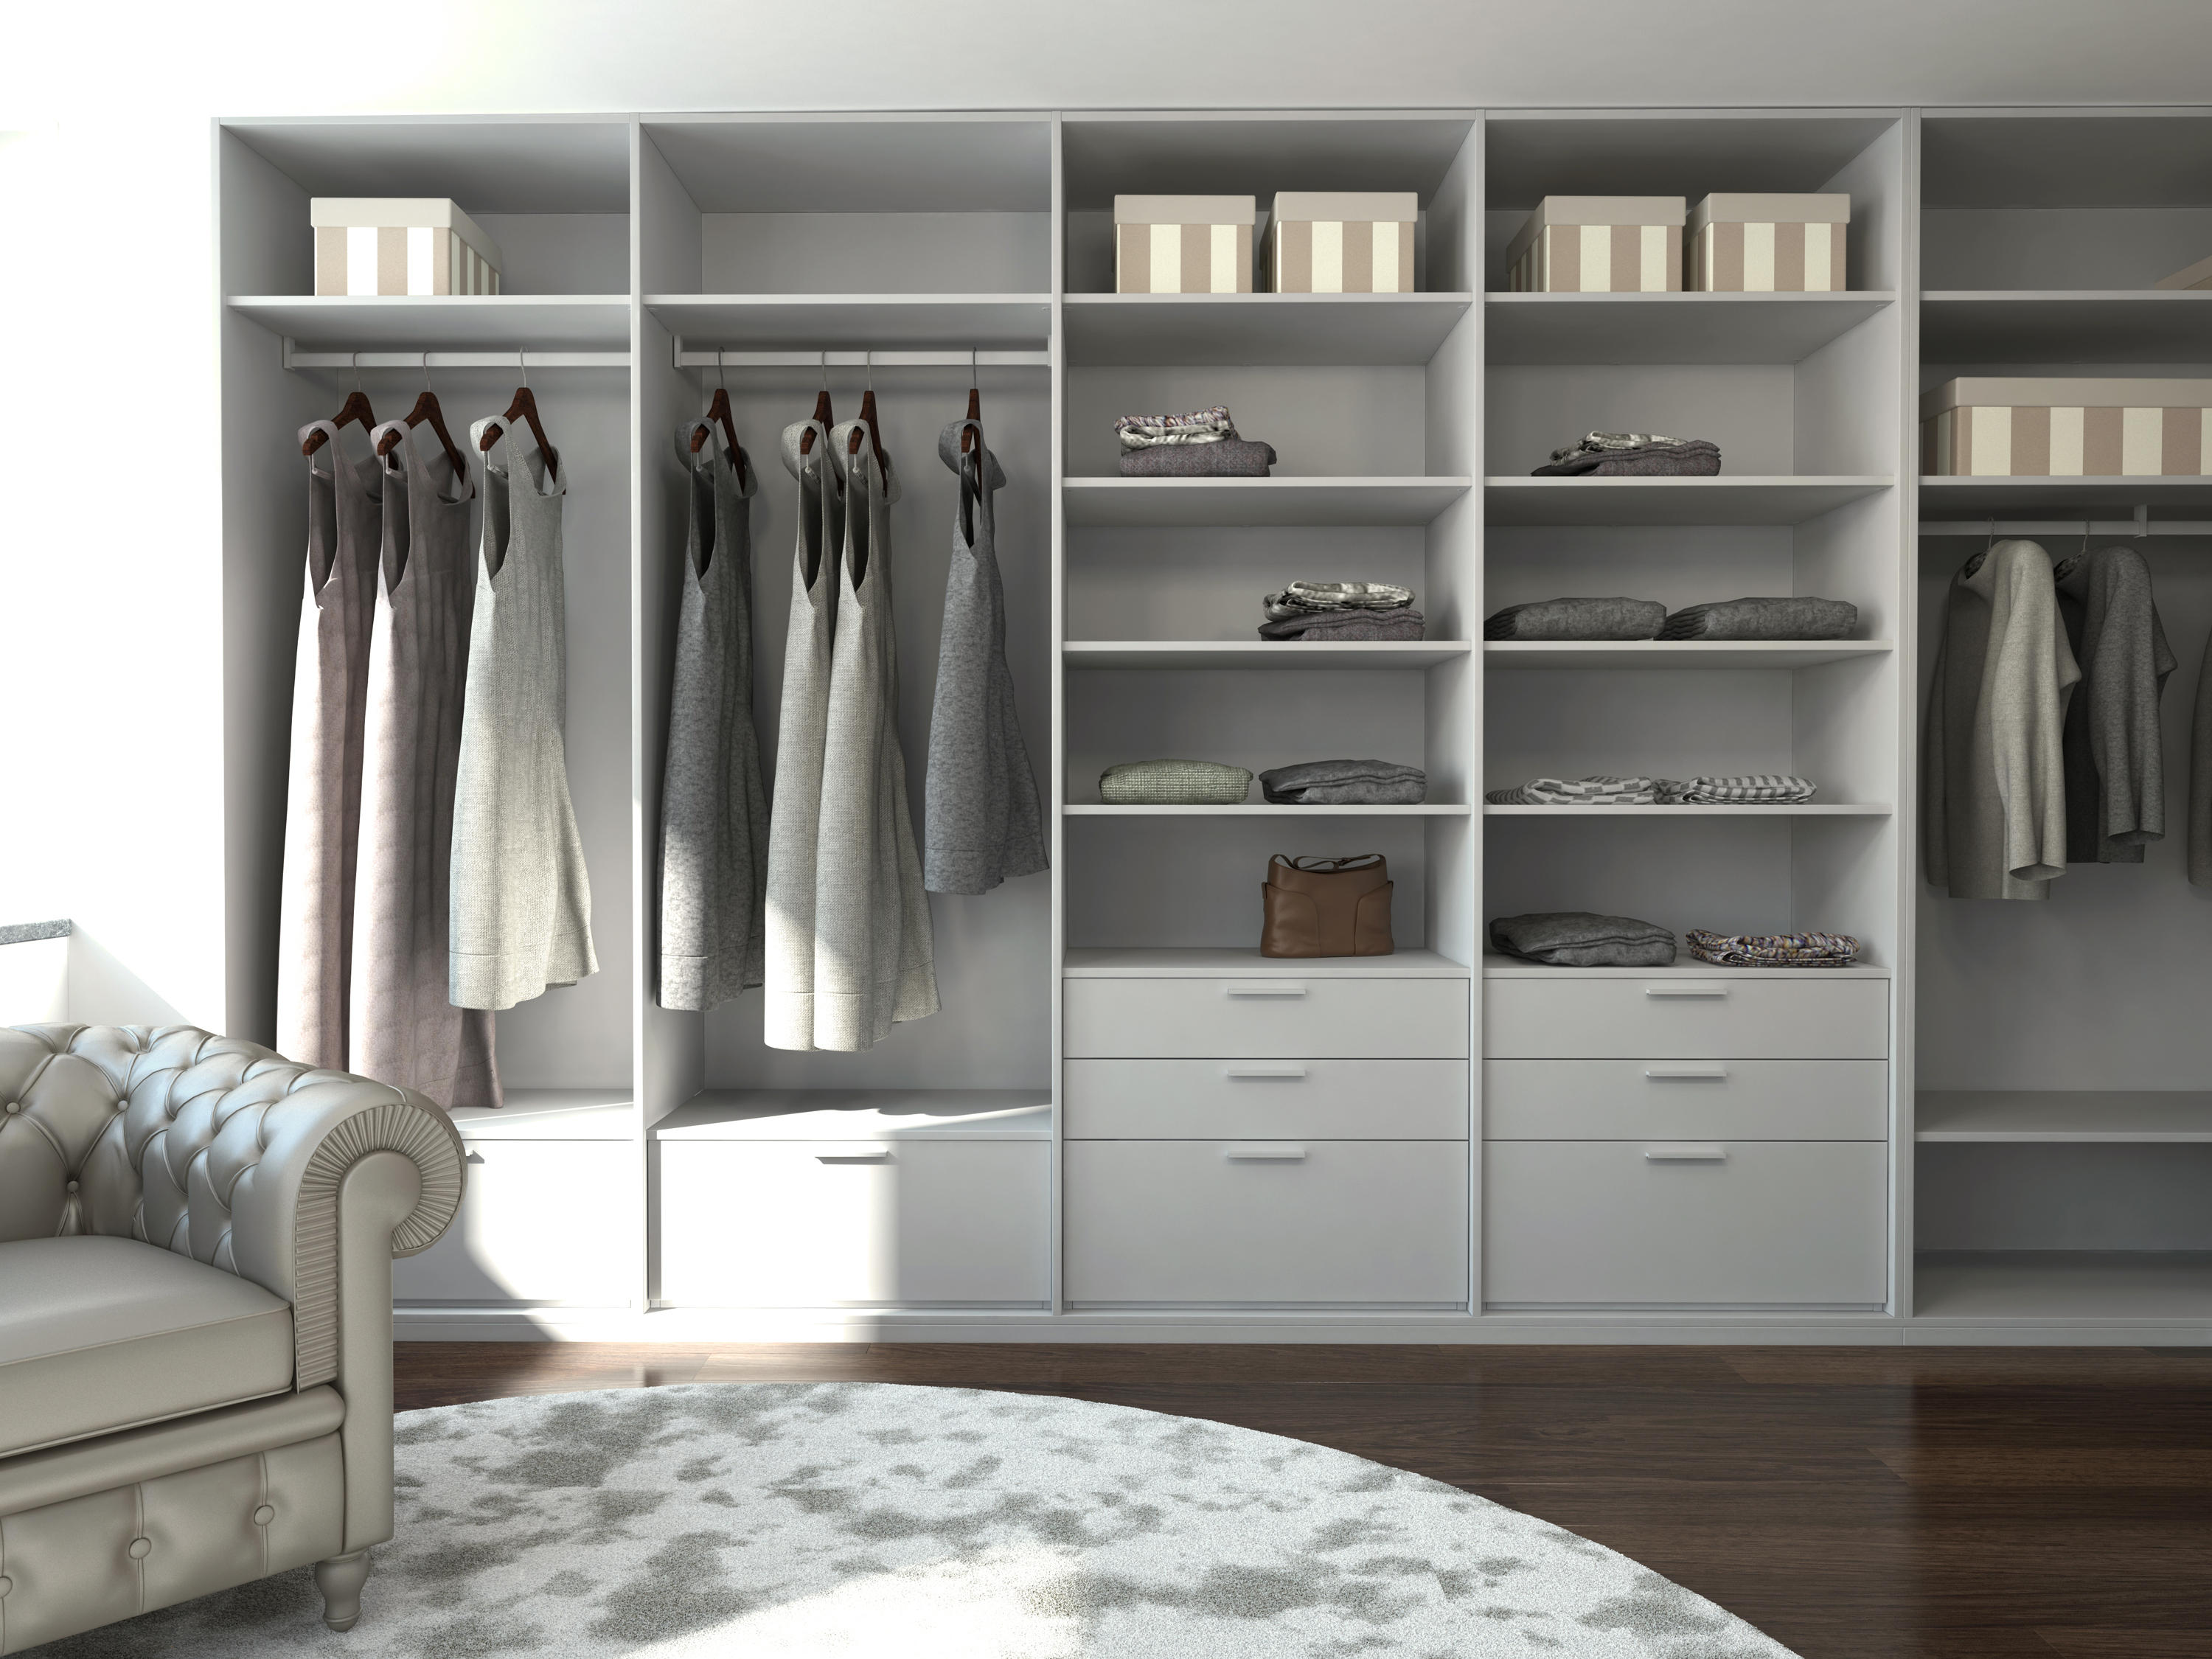 fabulous a add in wooden diy bathroom walk photos solutions roselawnlutheran no bedroom how to wardrobe built ikea master for small design pictures door plans white and showcase closets designs system unit dark ideas licious closet